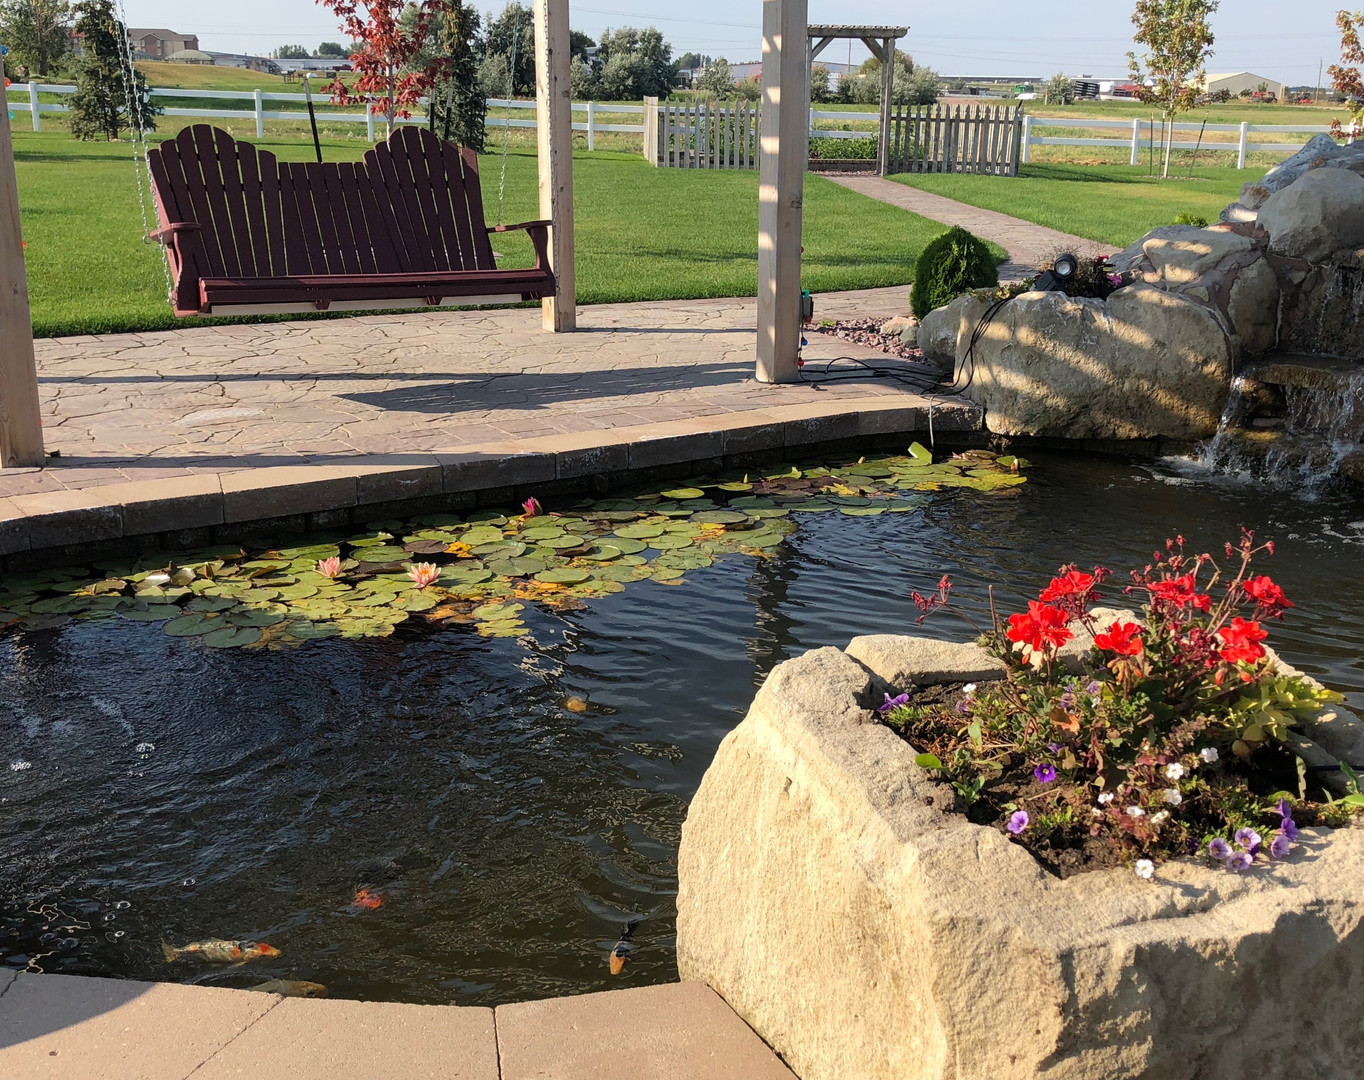 A combination of hardsacpe and water features, makes for an idyllic place to be.